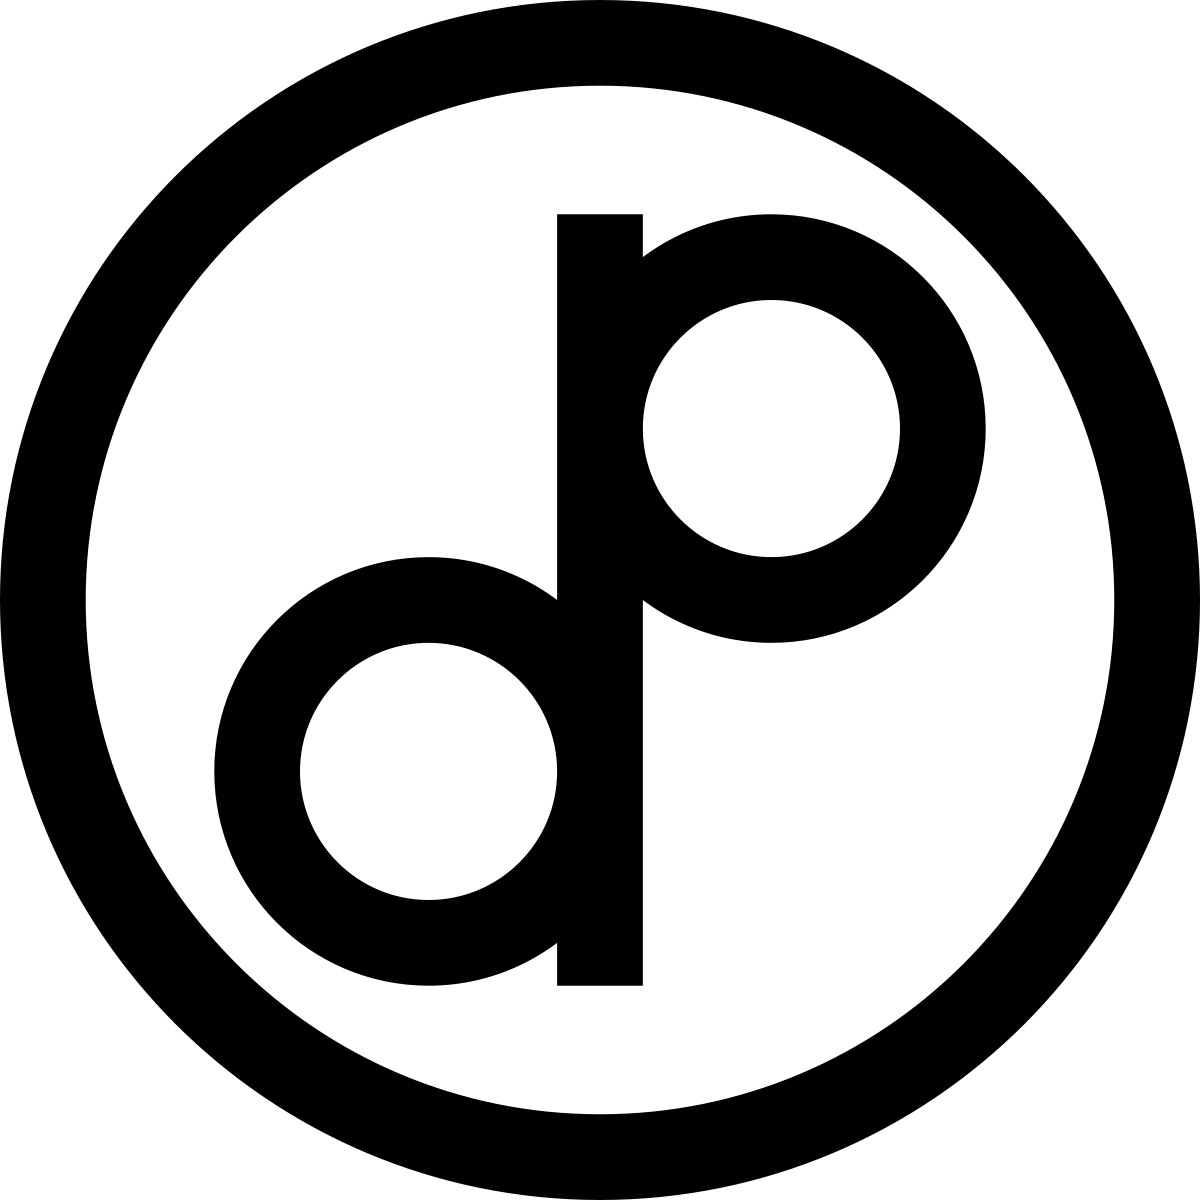 a public domain symbol; the letters d and p